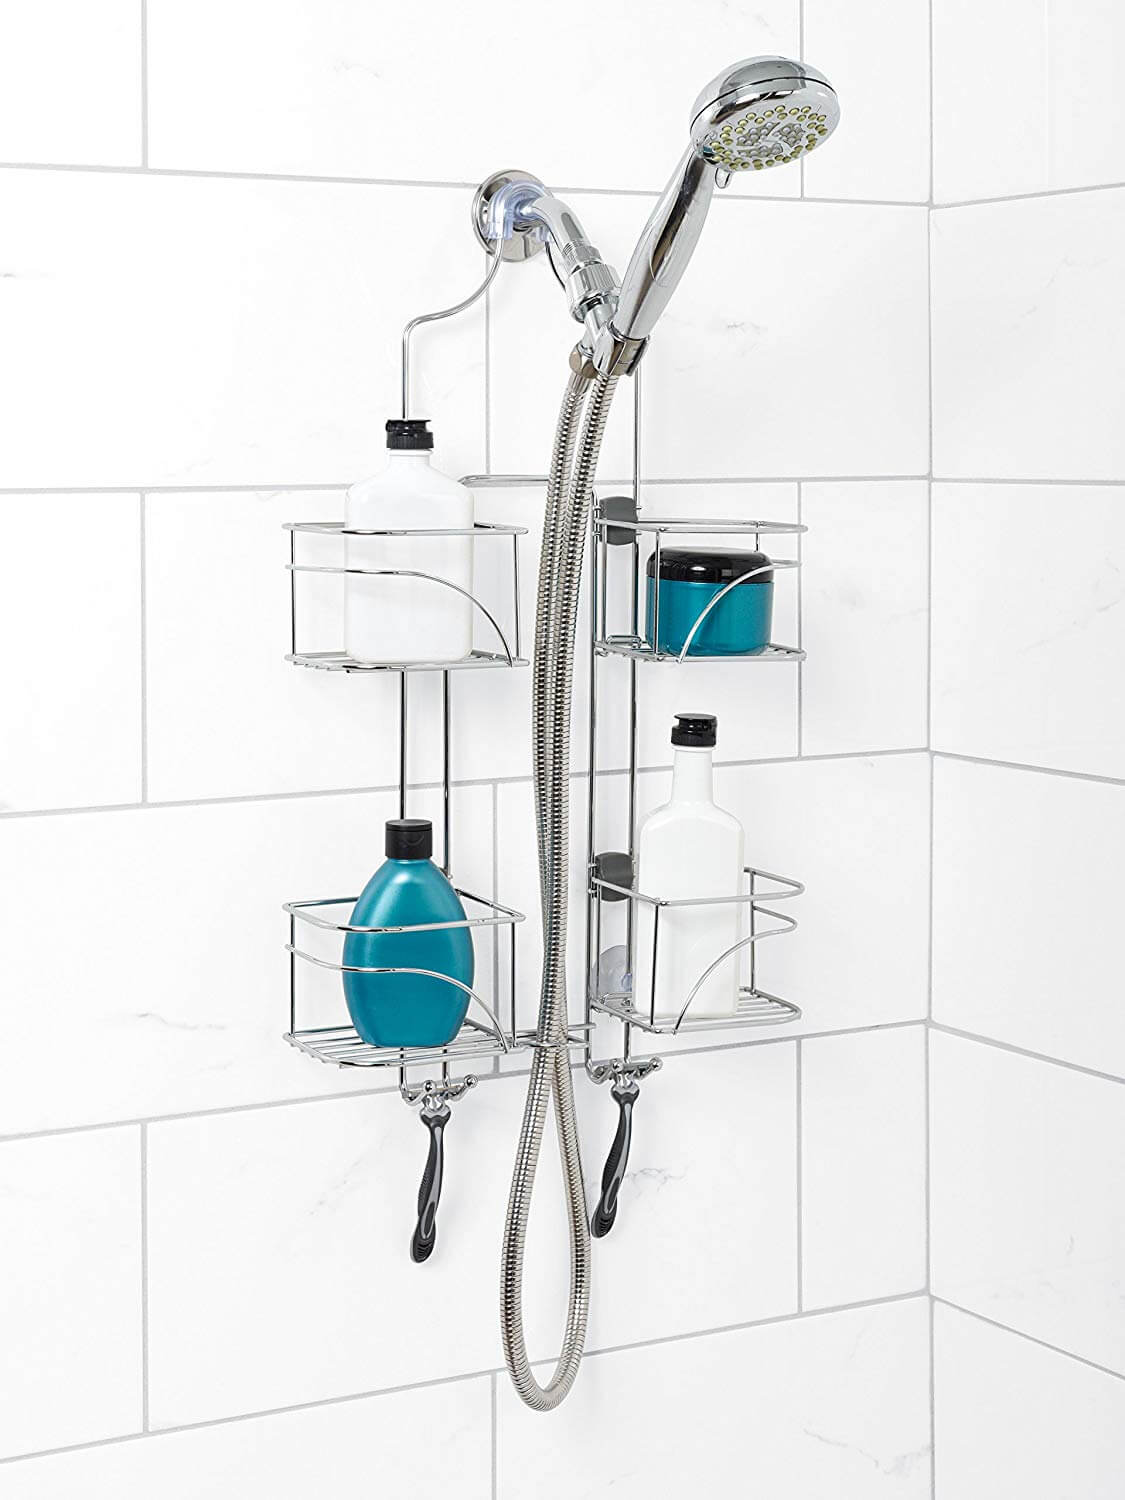 Hanging Shower Caddy Offers Great Design Ideas